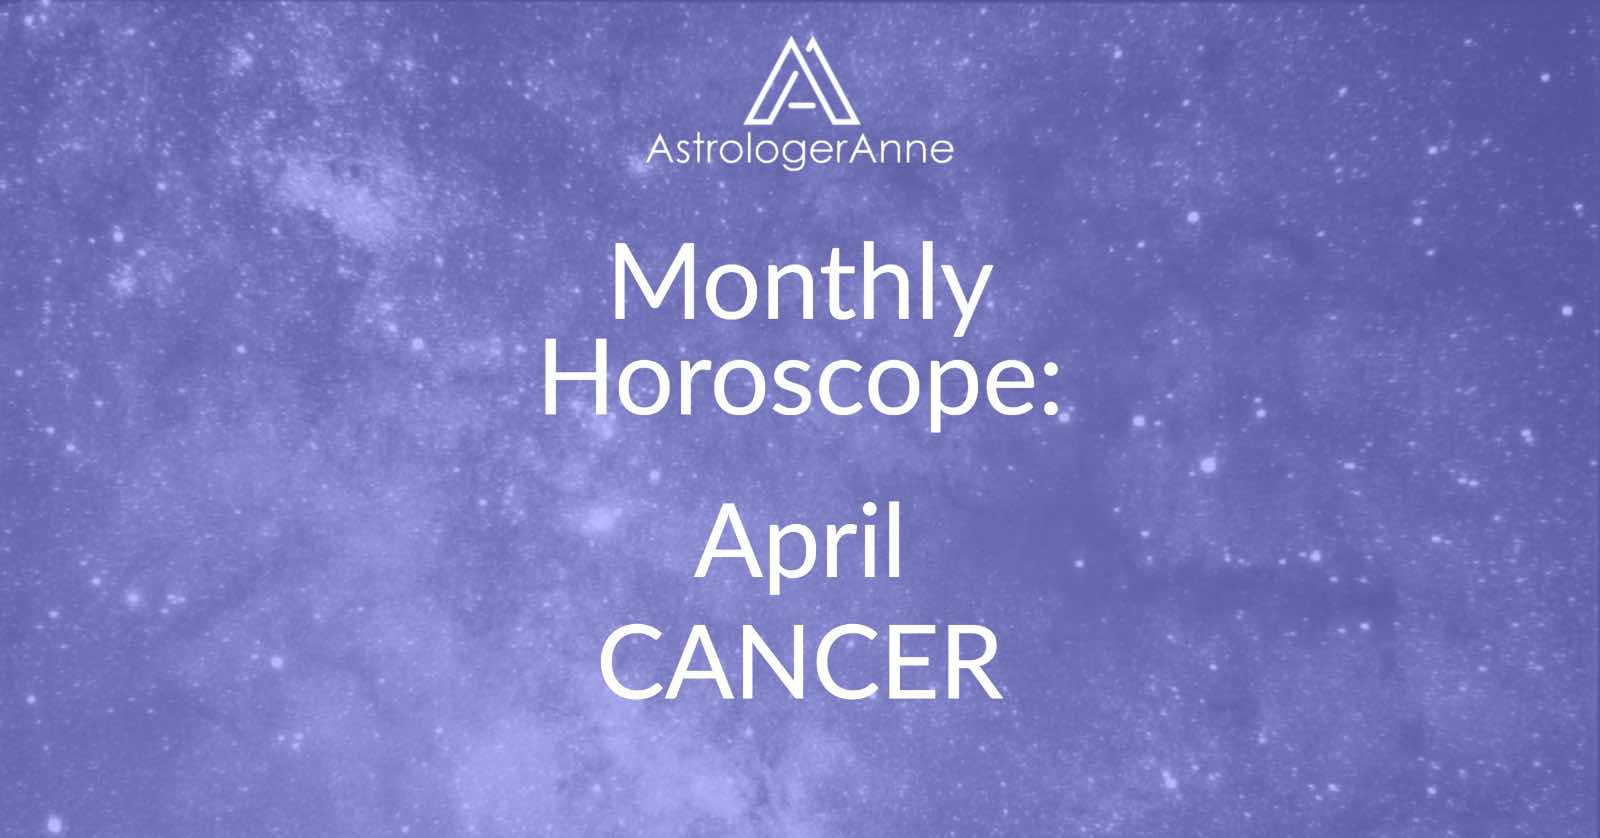 Monthly horoscope for Cancer zodiac sign, April 2019